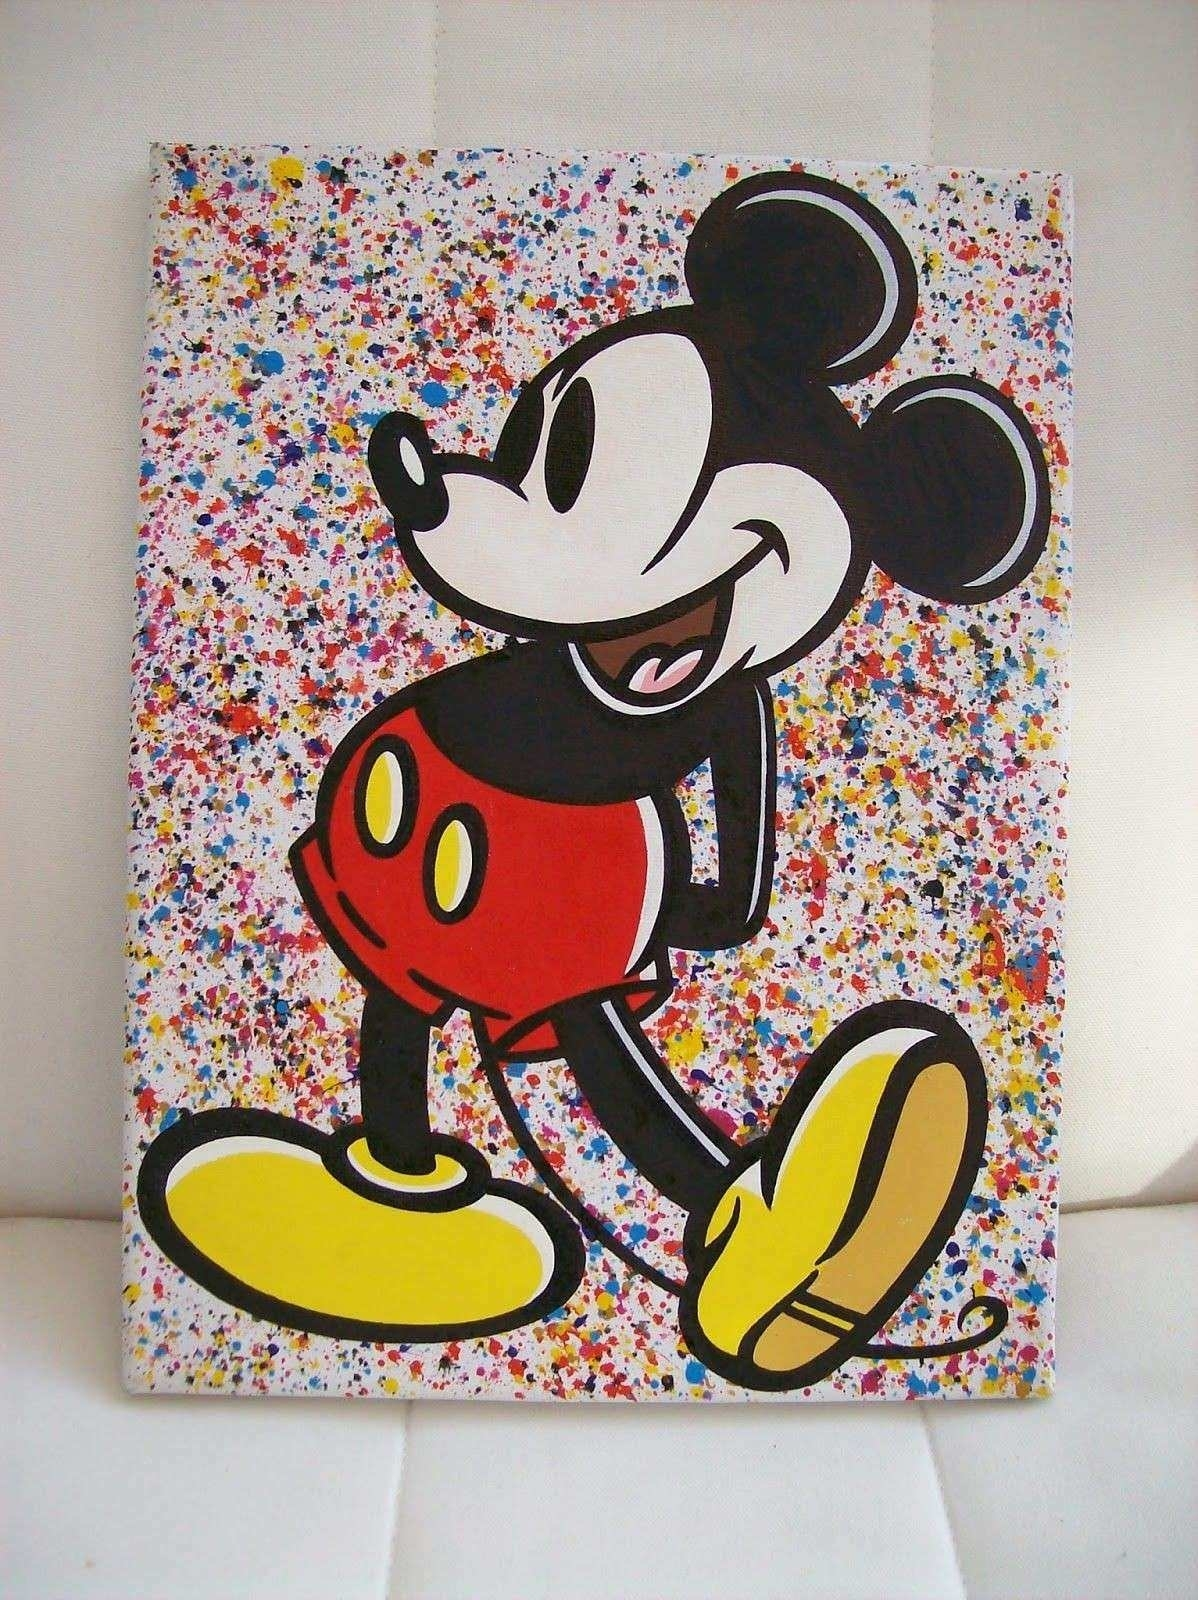 Mickey Mouse Canvas Wall Art Luxury Mickey Mouse Acrylic Paintings intended for Mickey Mouse Canvas Wall Art (Image 17 of 20)